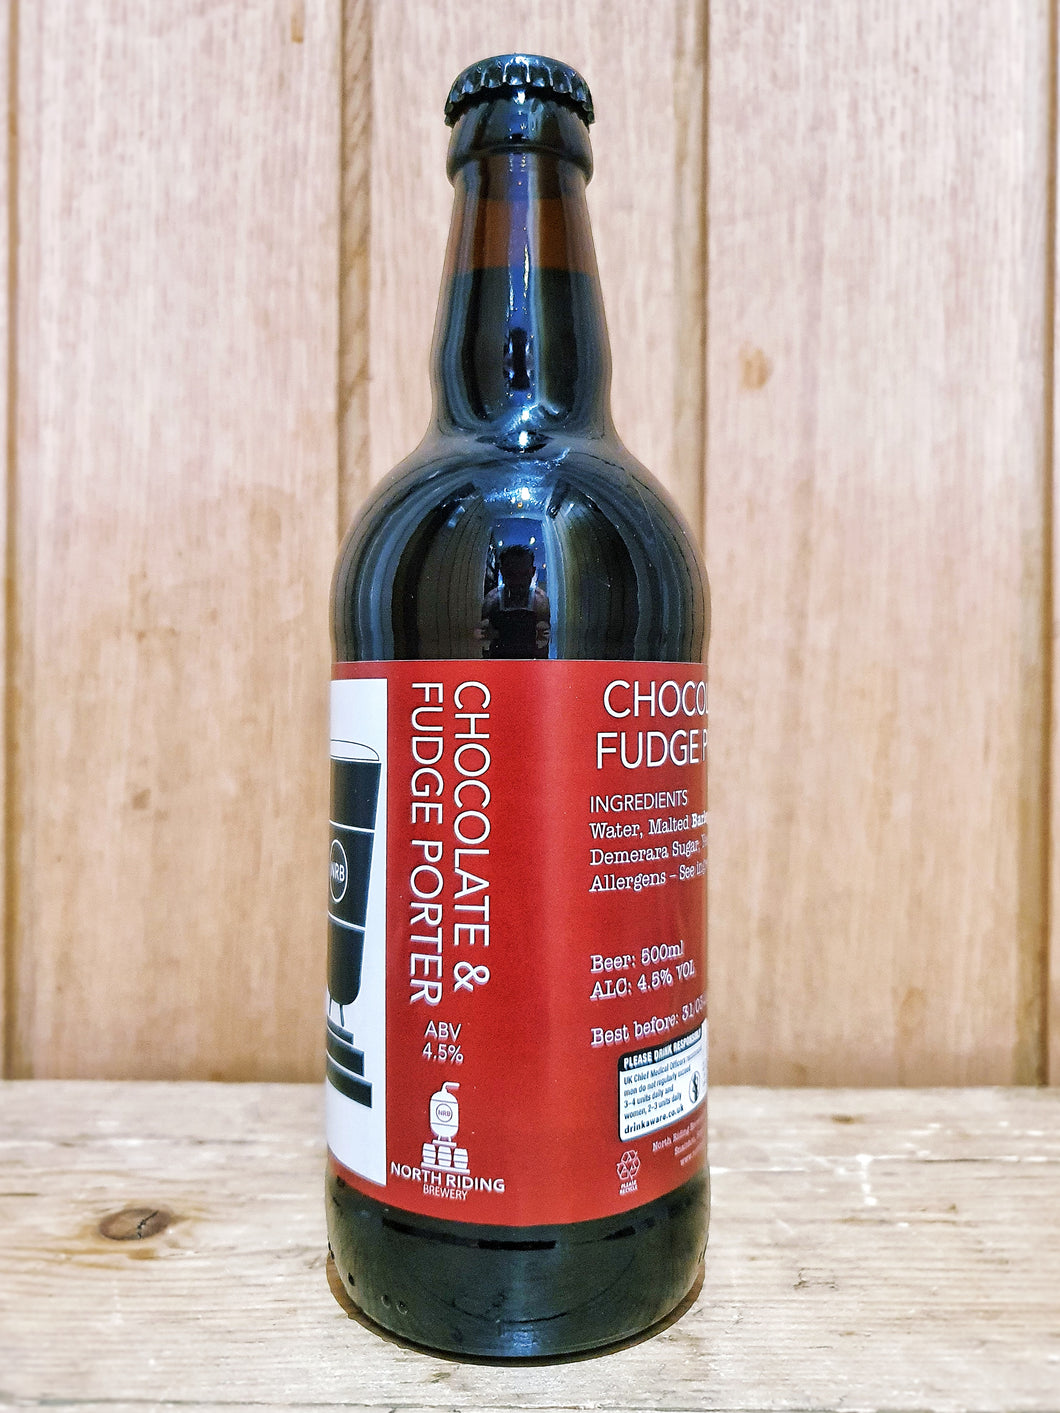 North Riding Brewery - Chocolate and Fudge Porter